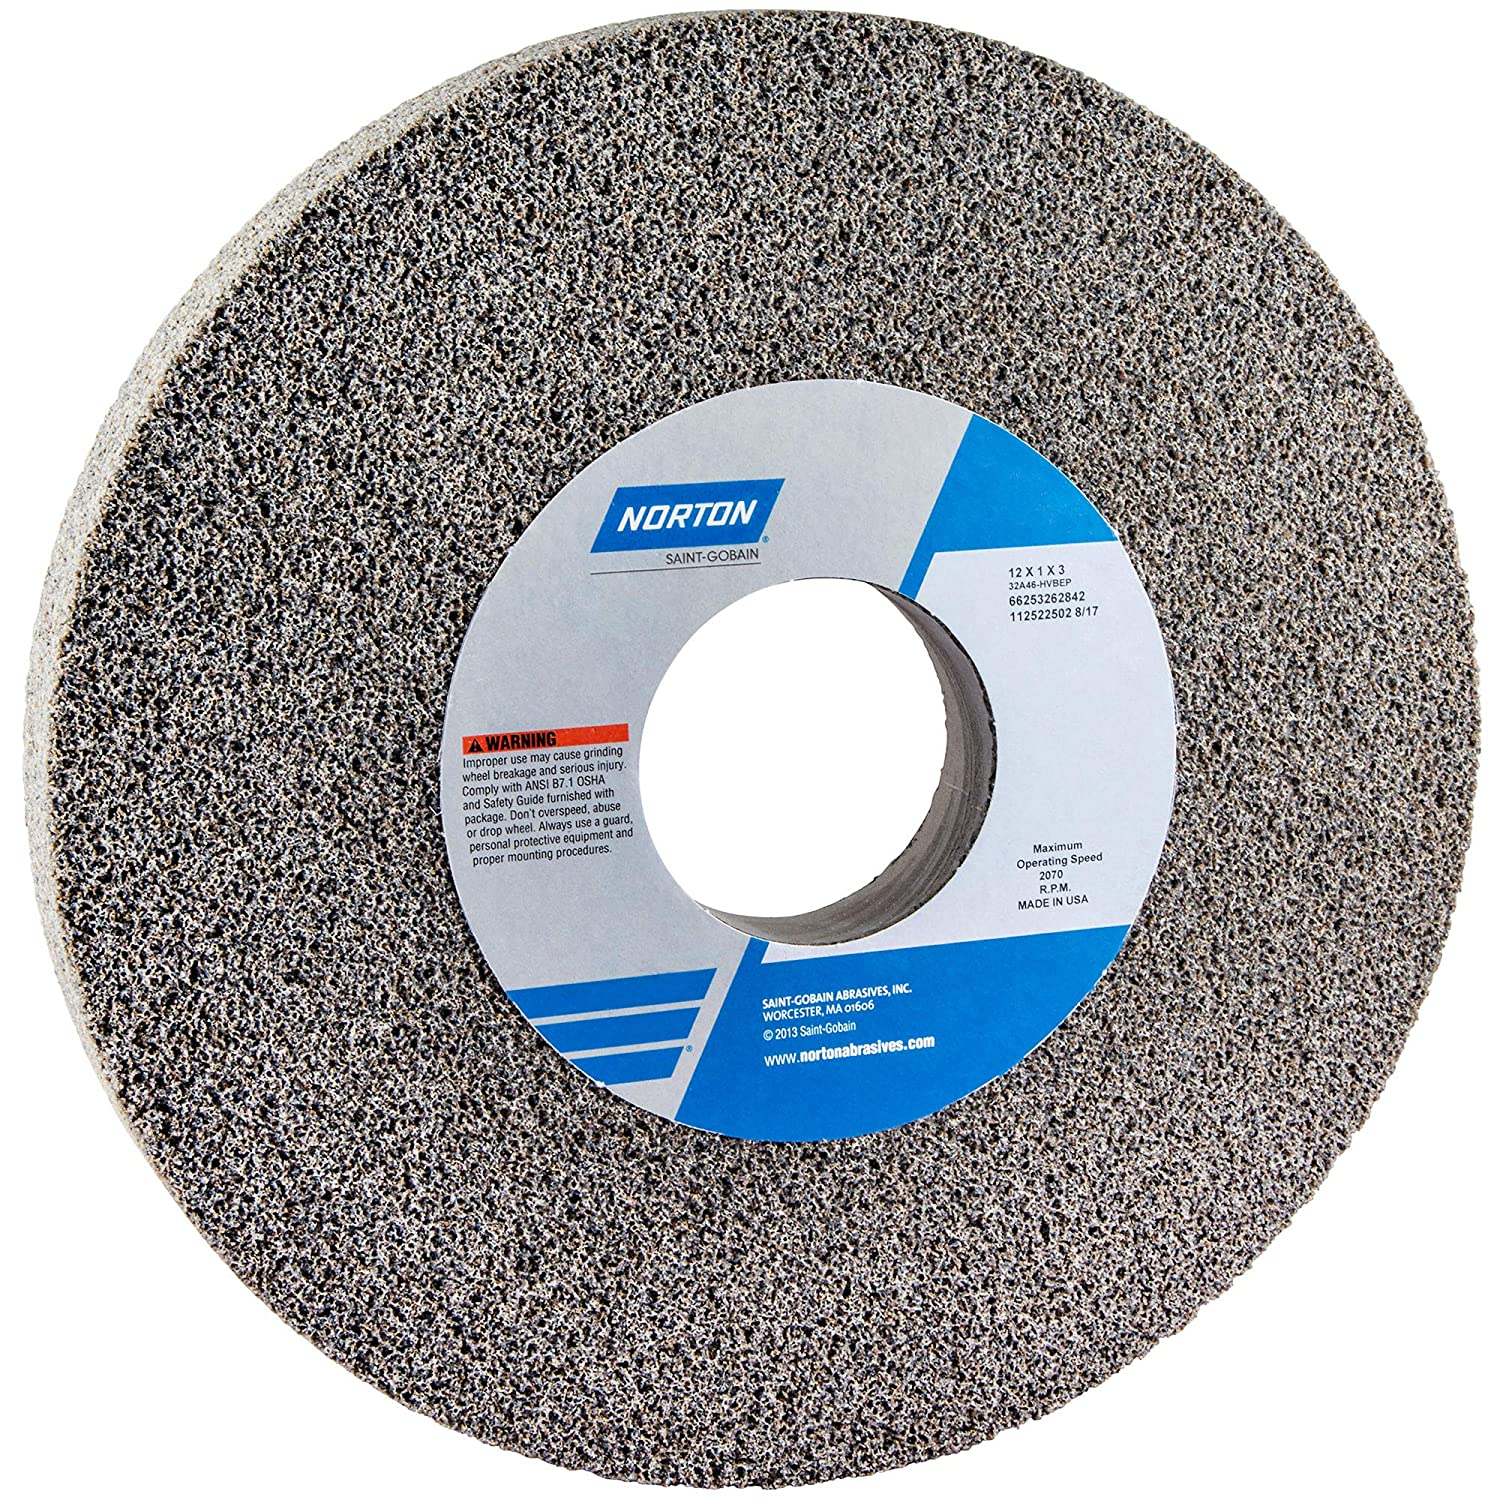 Norton 66253262842 Surface Grinding Wheels 1 Special price 12 3 Albuquerque Mall Size x